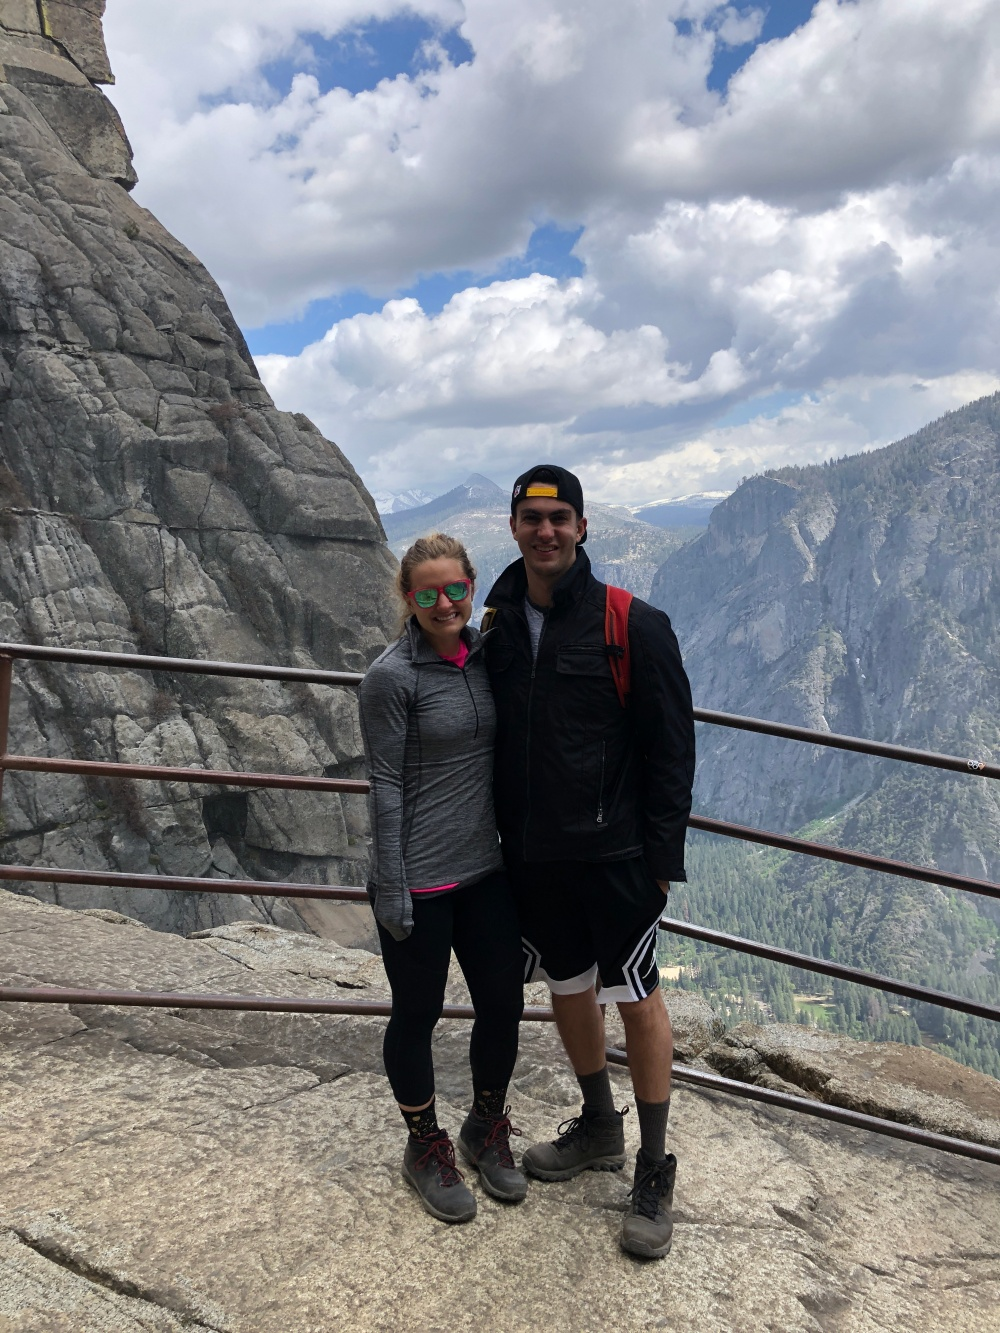 Top of Upper Yosemite Falls